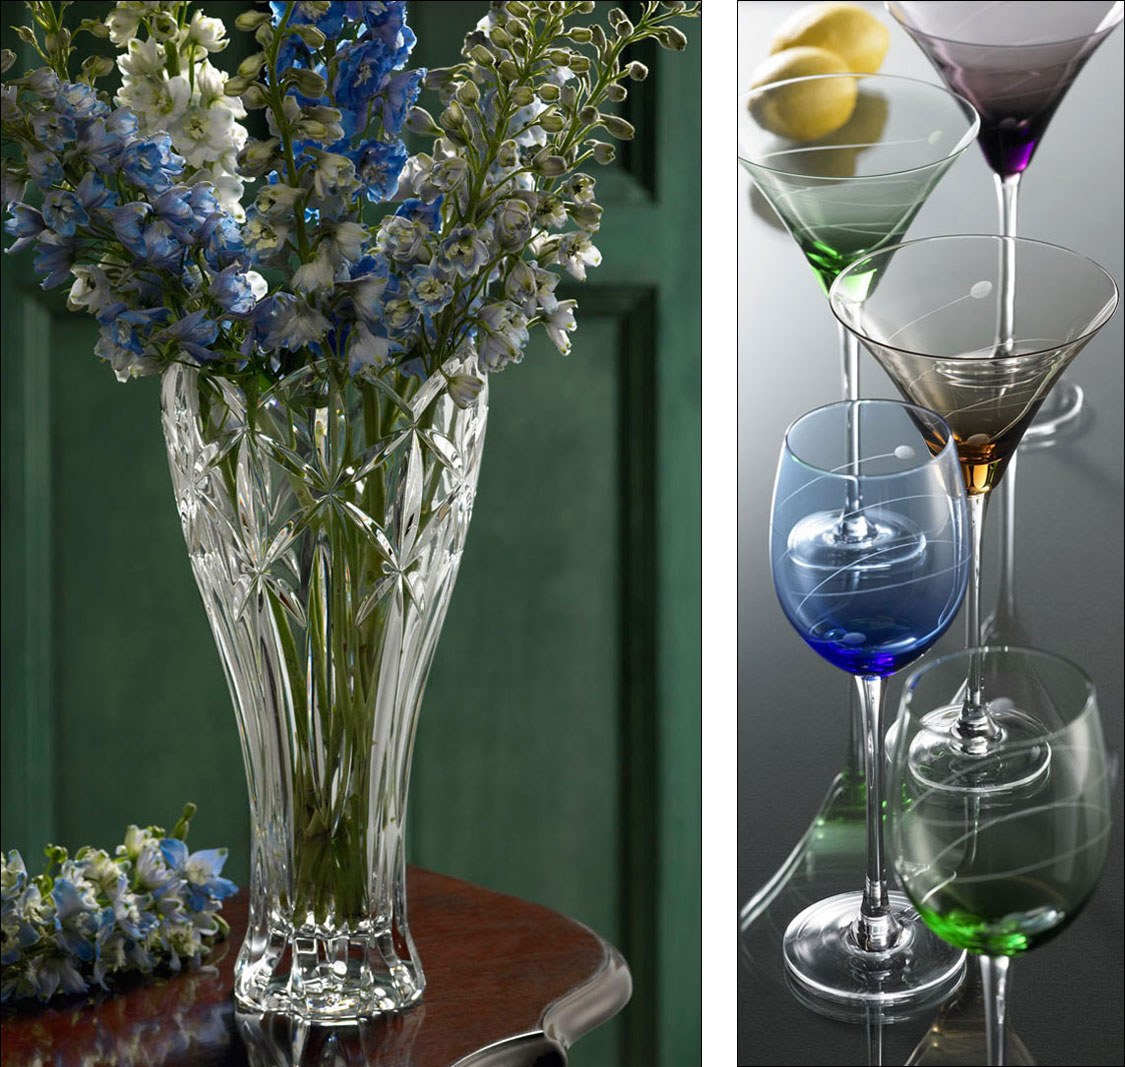 product photography of glassware and flower vase